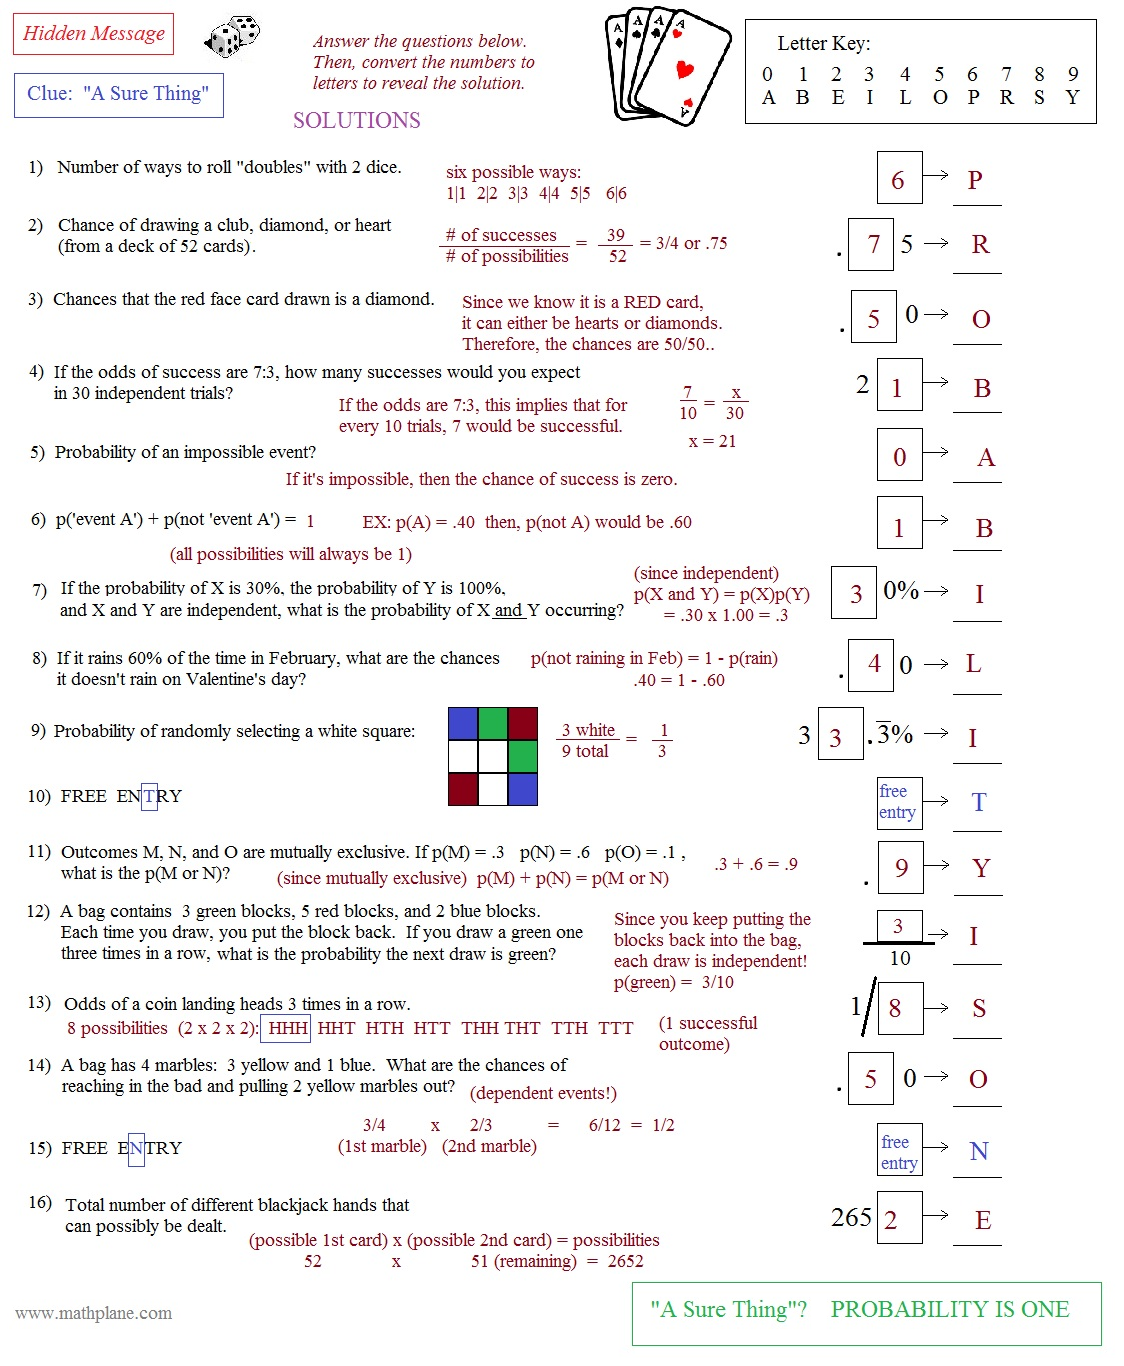 Math Plane Probability 1 Introduction 8 Hidden Message 2 Probability  Solutions Probability 1 Introduction Independent And Dependent Probability  Worksheet